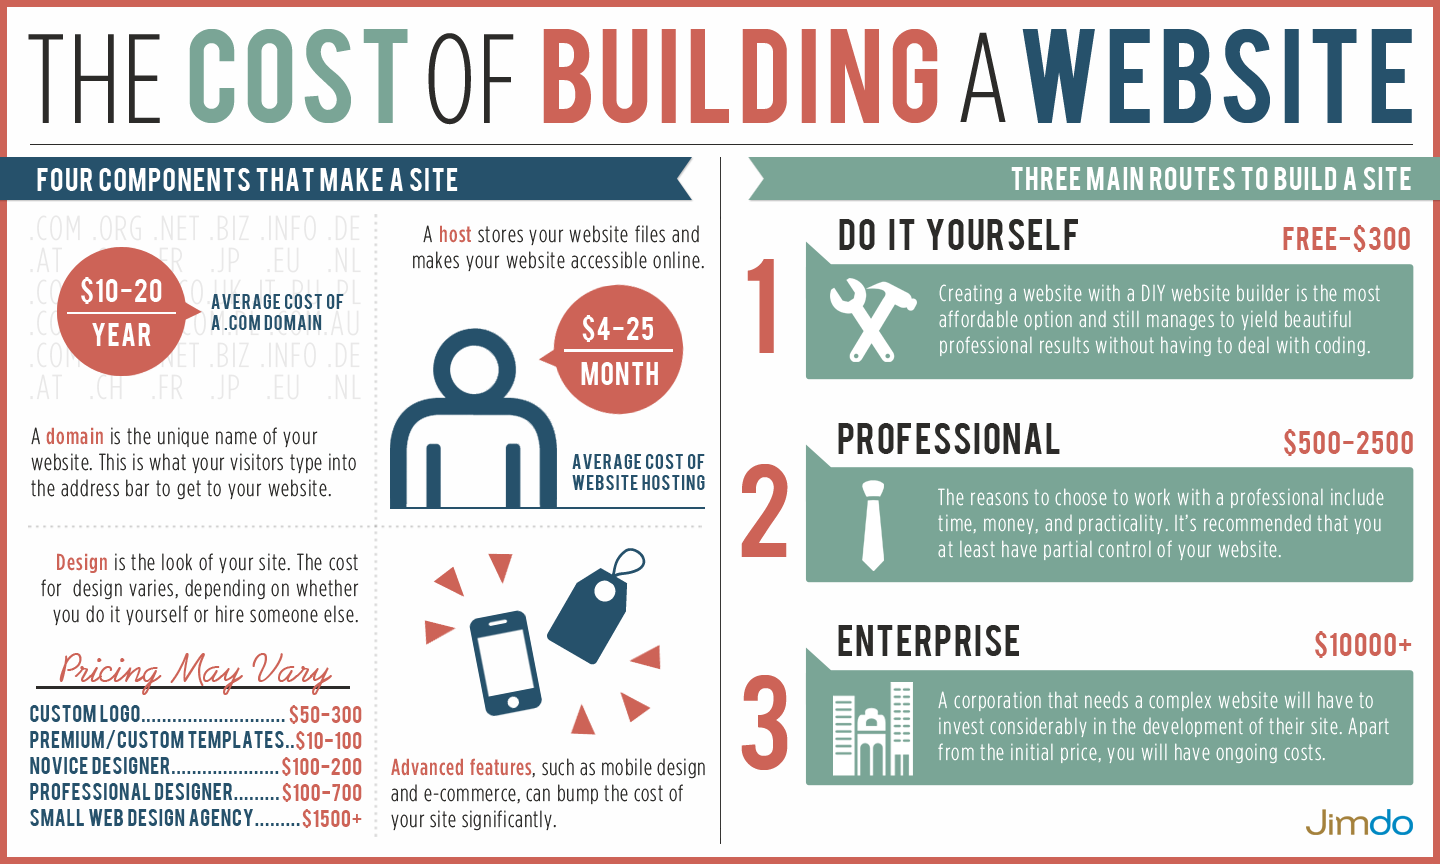 The cost of building a website